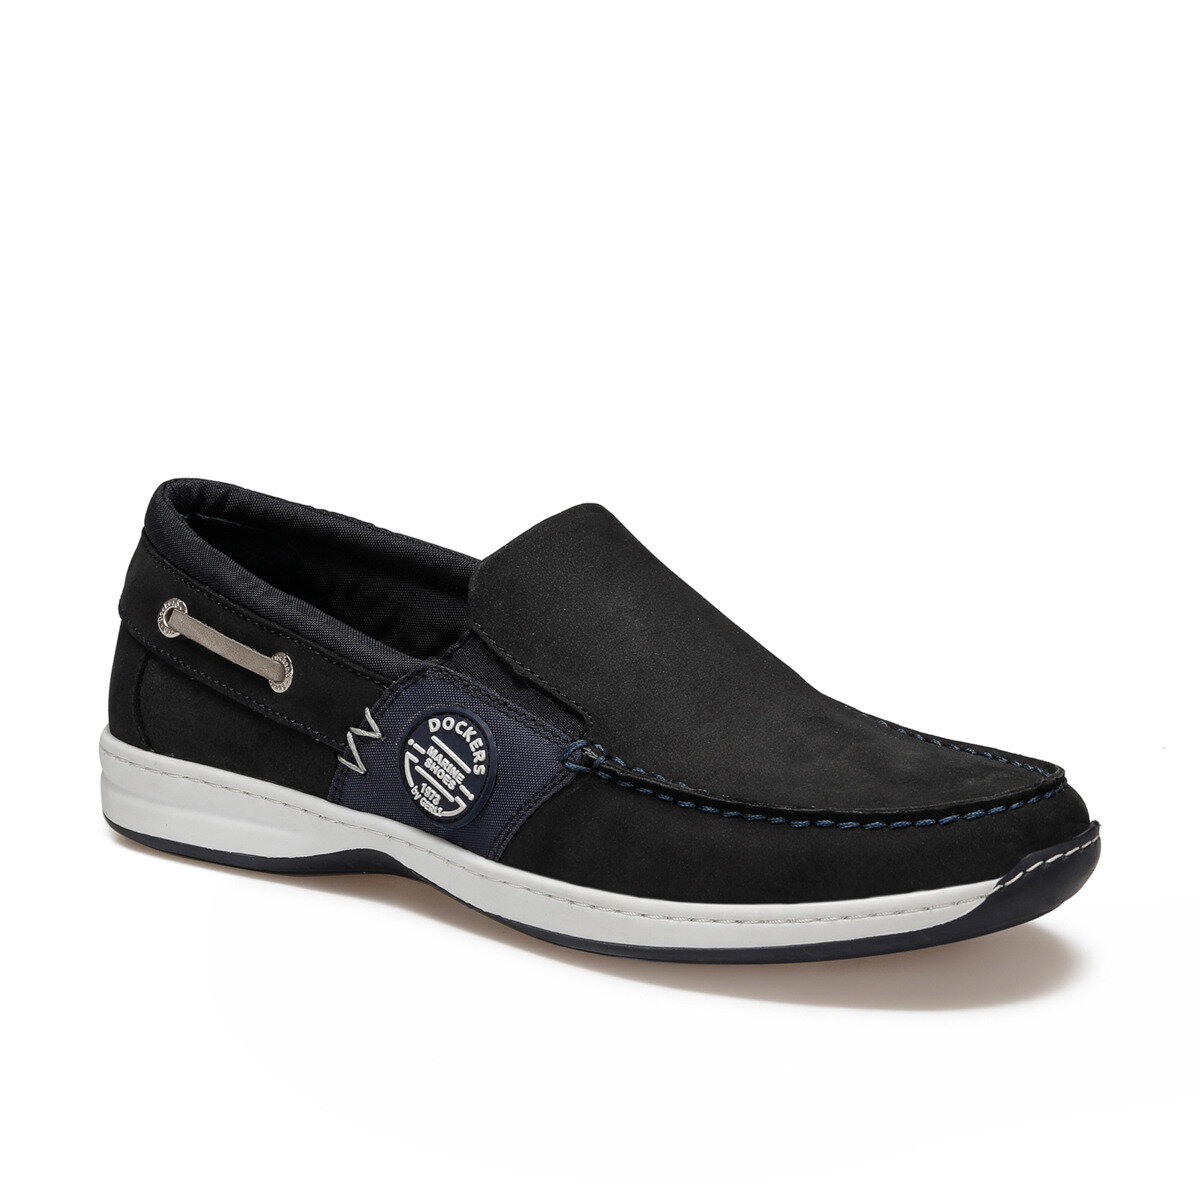 FLO 220101 Navy Blue Men 'S Shoes By Dockers The Gerle